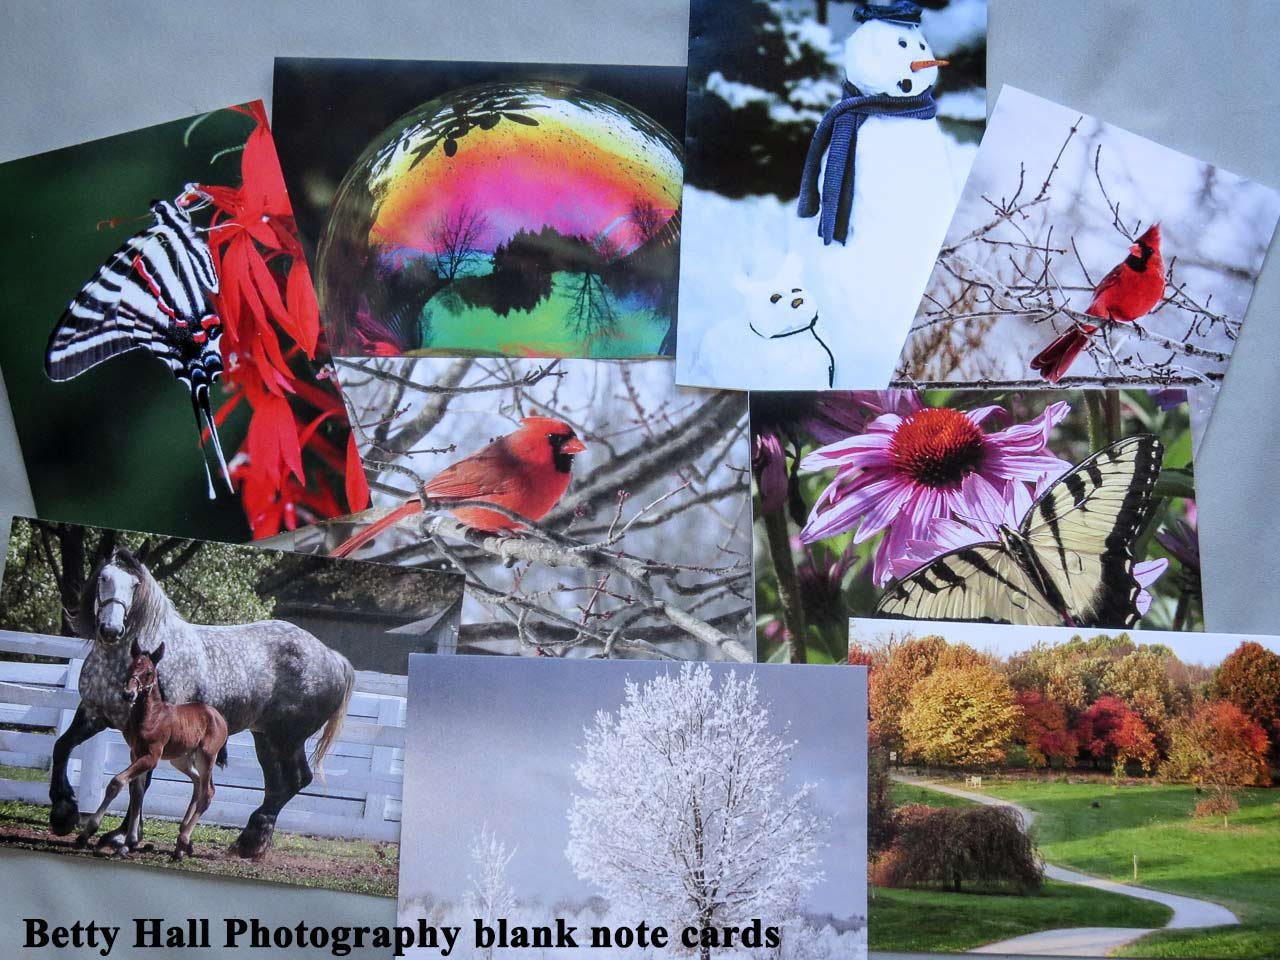 Betty Hall Photography note cards cards